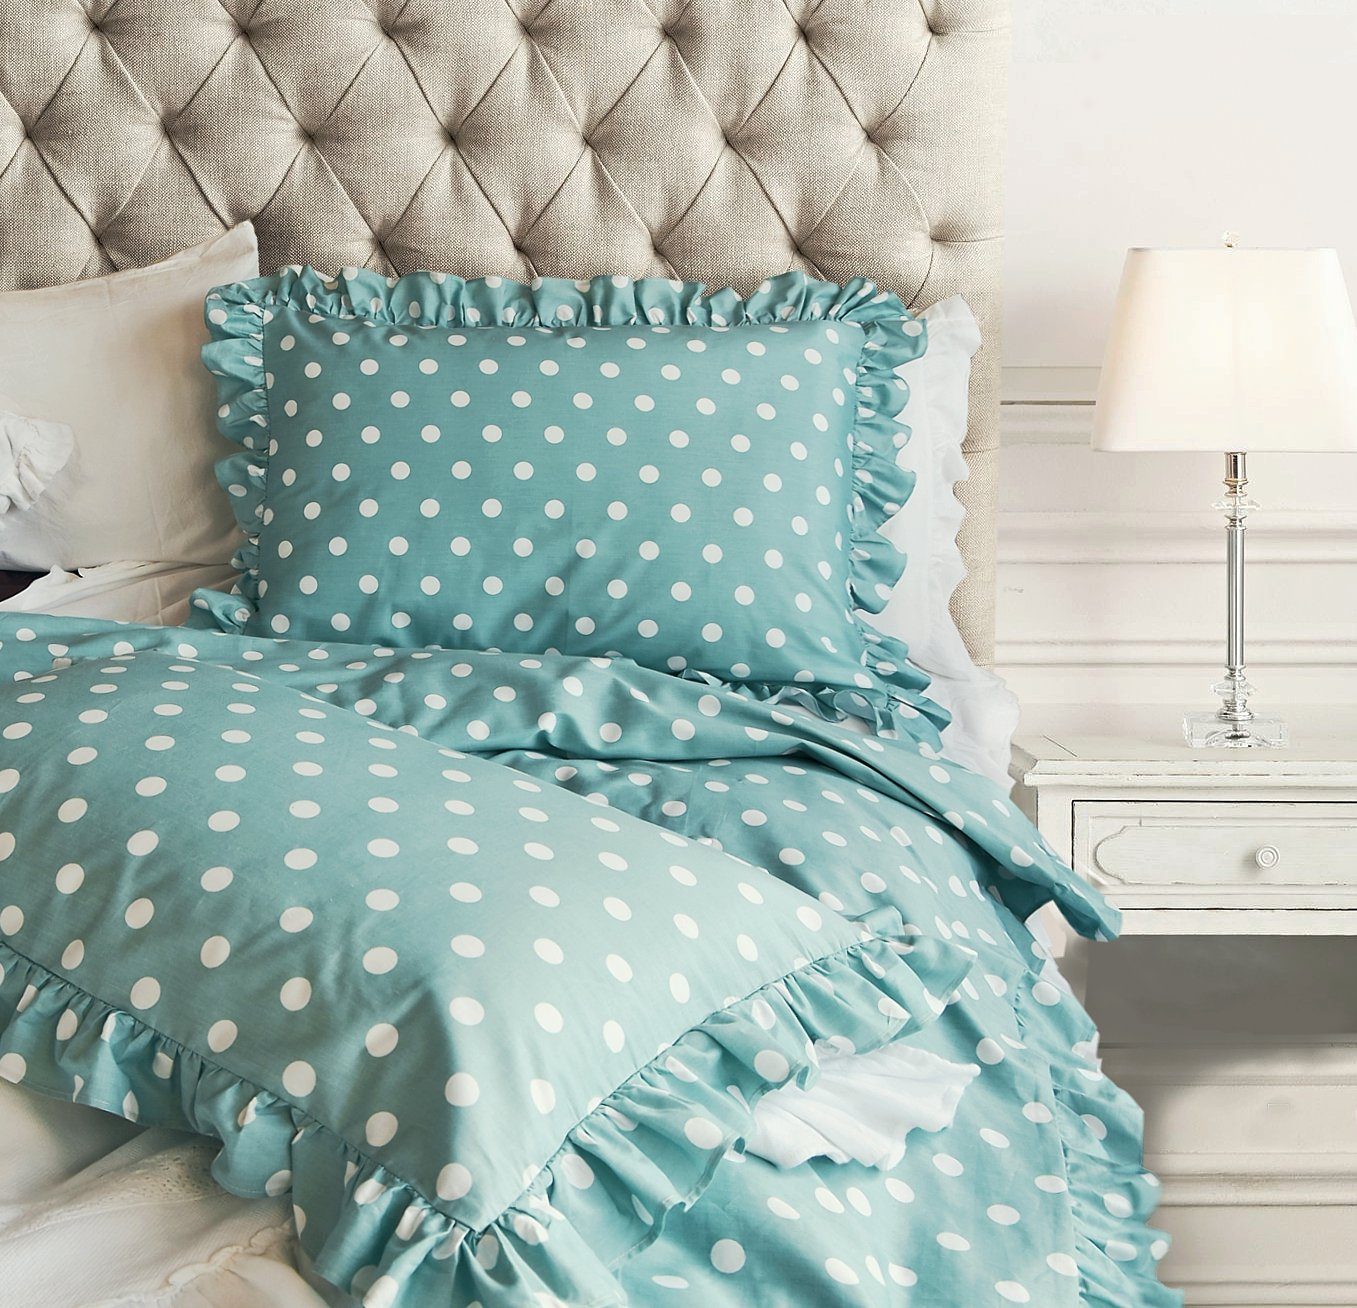 Blue polka dot bedding - Amazon Com Chic Ruffled Edge Polka Dot Duvet Quilt Cover Classic Parisian Romantic Vintage Ruffle Girls Teen Cotton 3pc Bedding Set Full Queen Turquoise Or